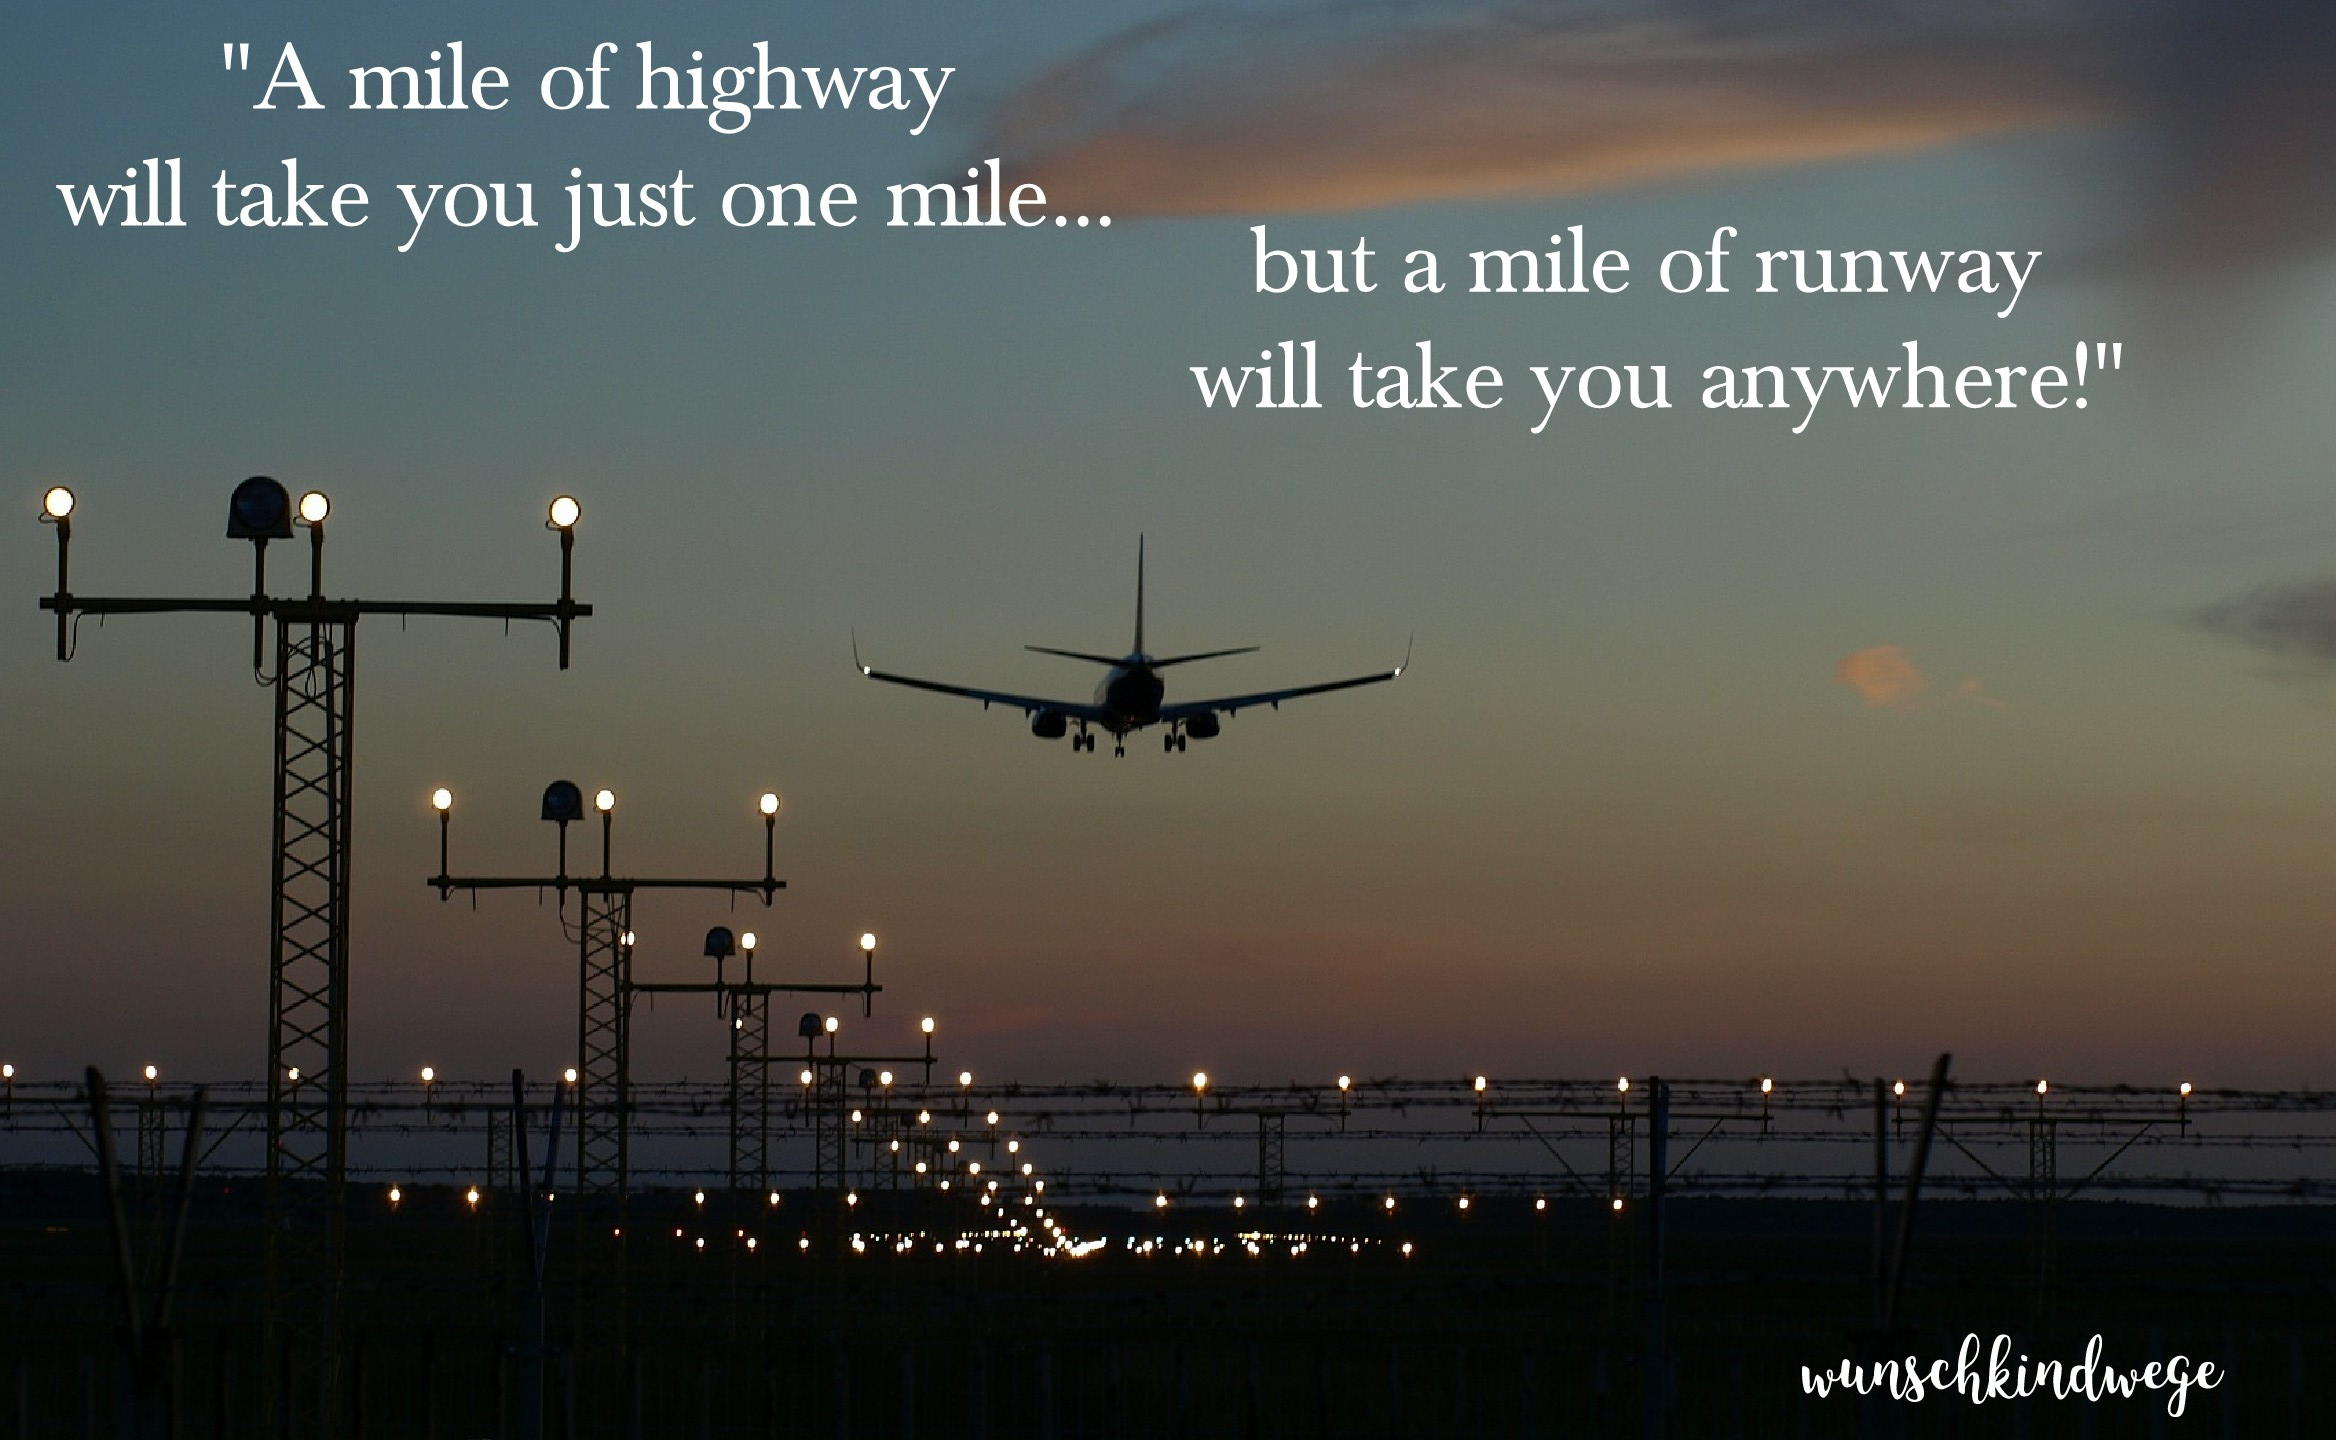 Florida mit Kindern: A mile of highway will take you just one mile, but a mile of runway will take you anywhere